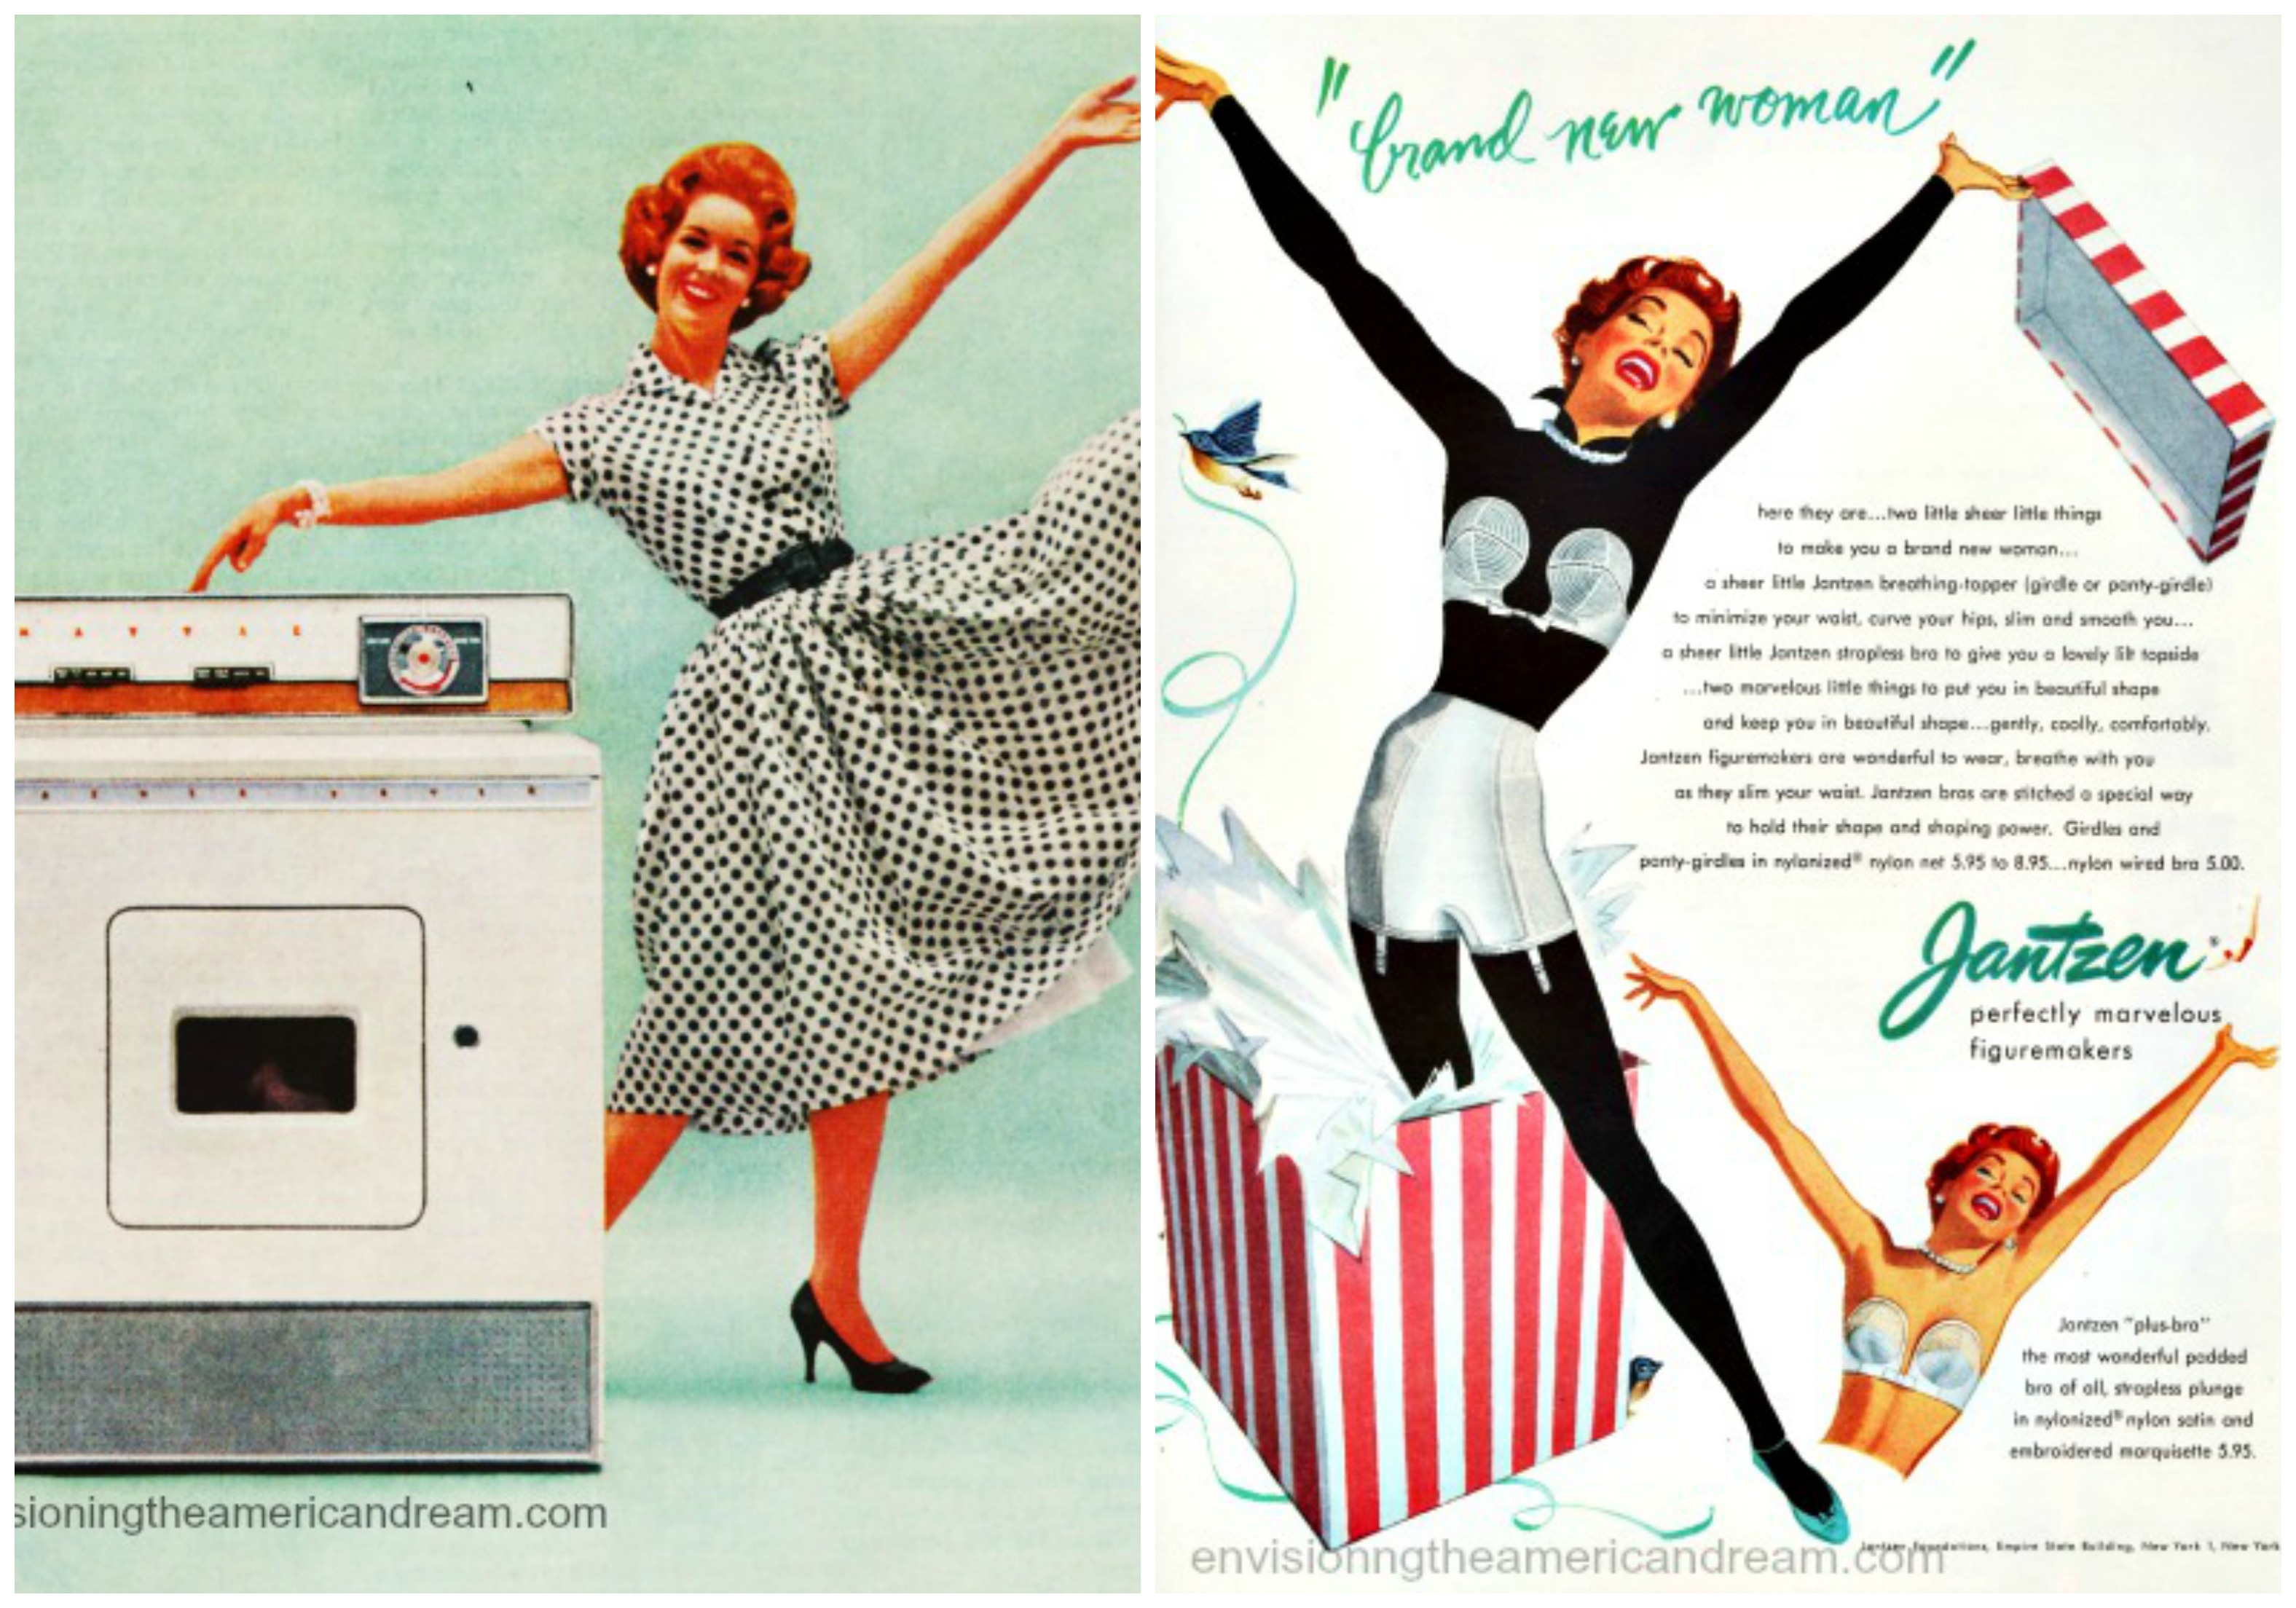 Housewives new freedom jump for joy l vintage ad maytag washer r